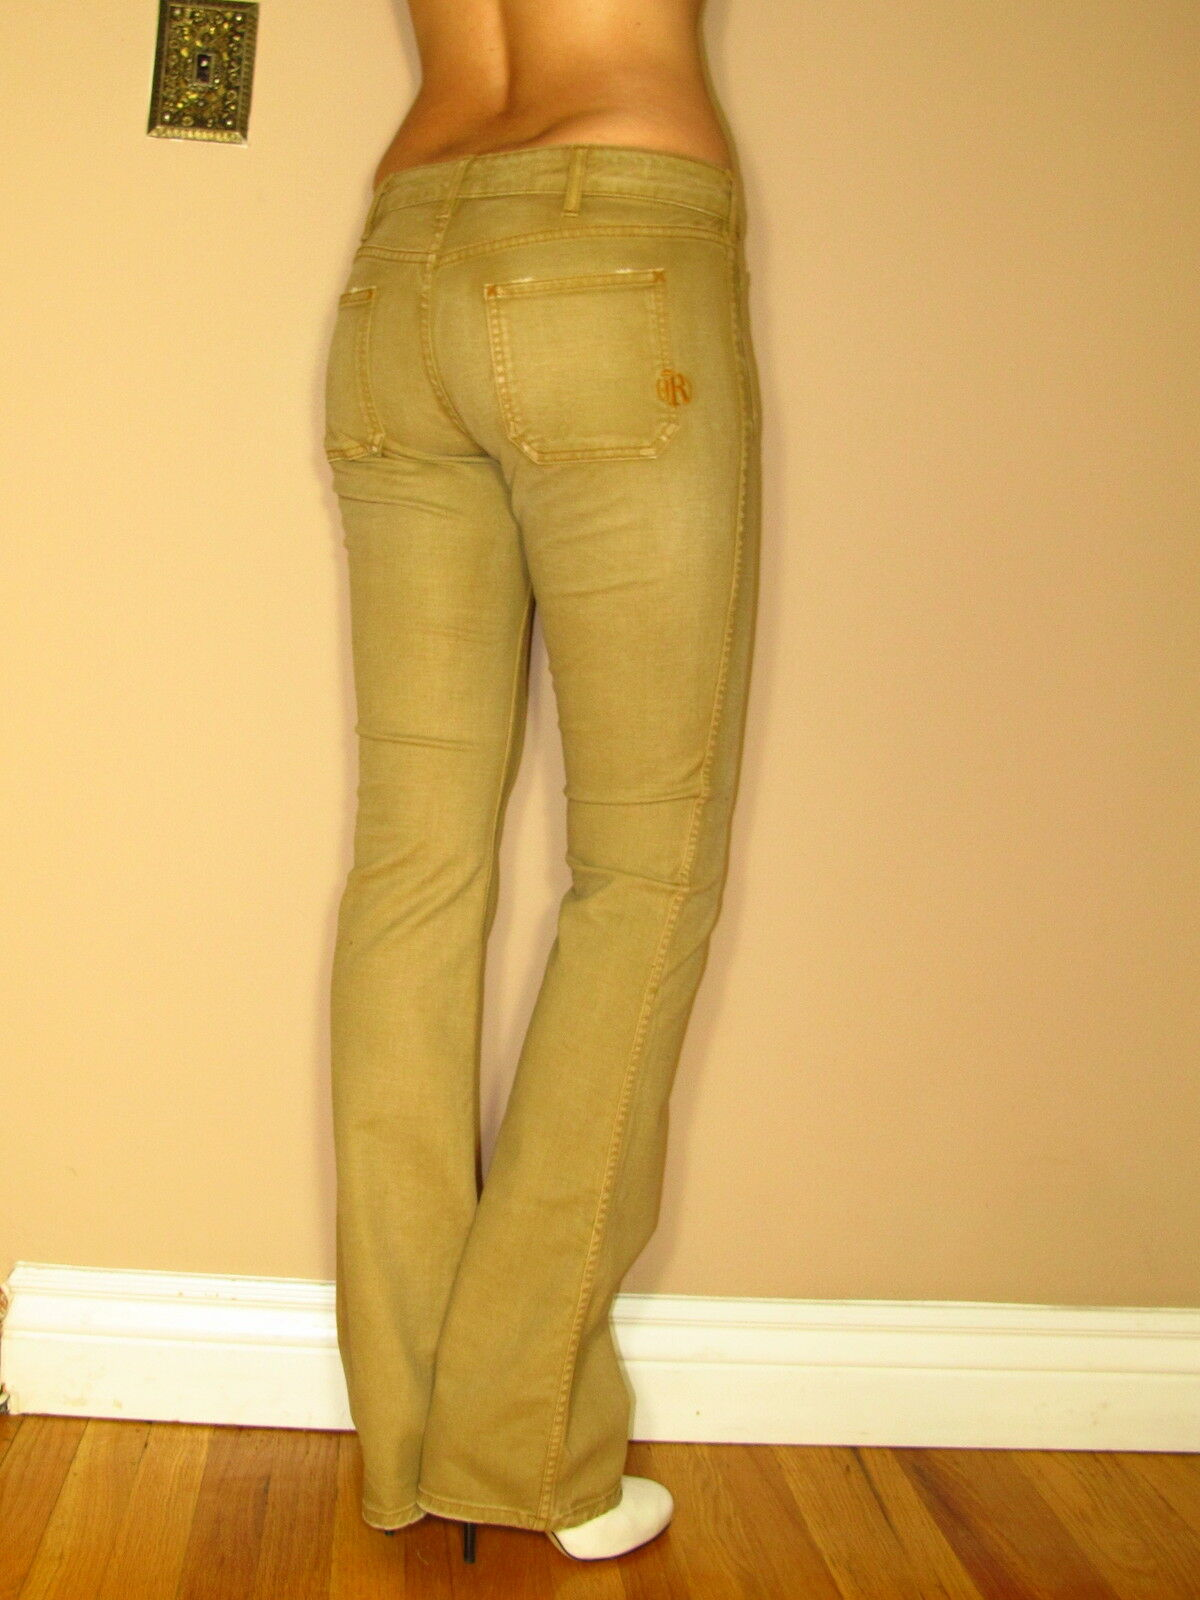 Rich&Skinny  178 Swabby Jeans Khaki Sand Beige Distressed Bootcut Button Fly 25